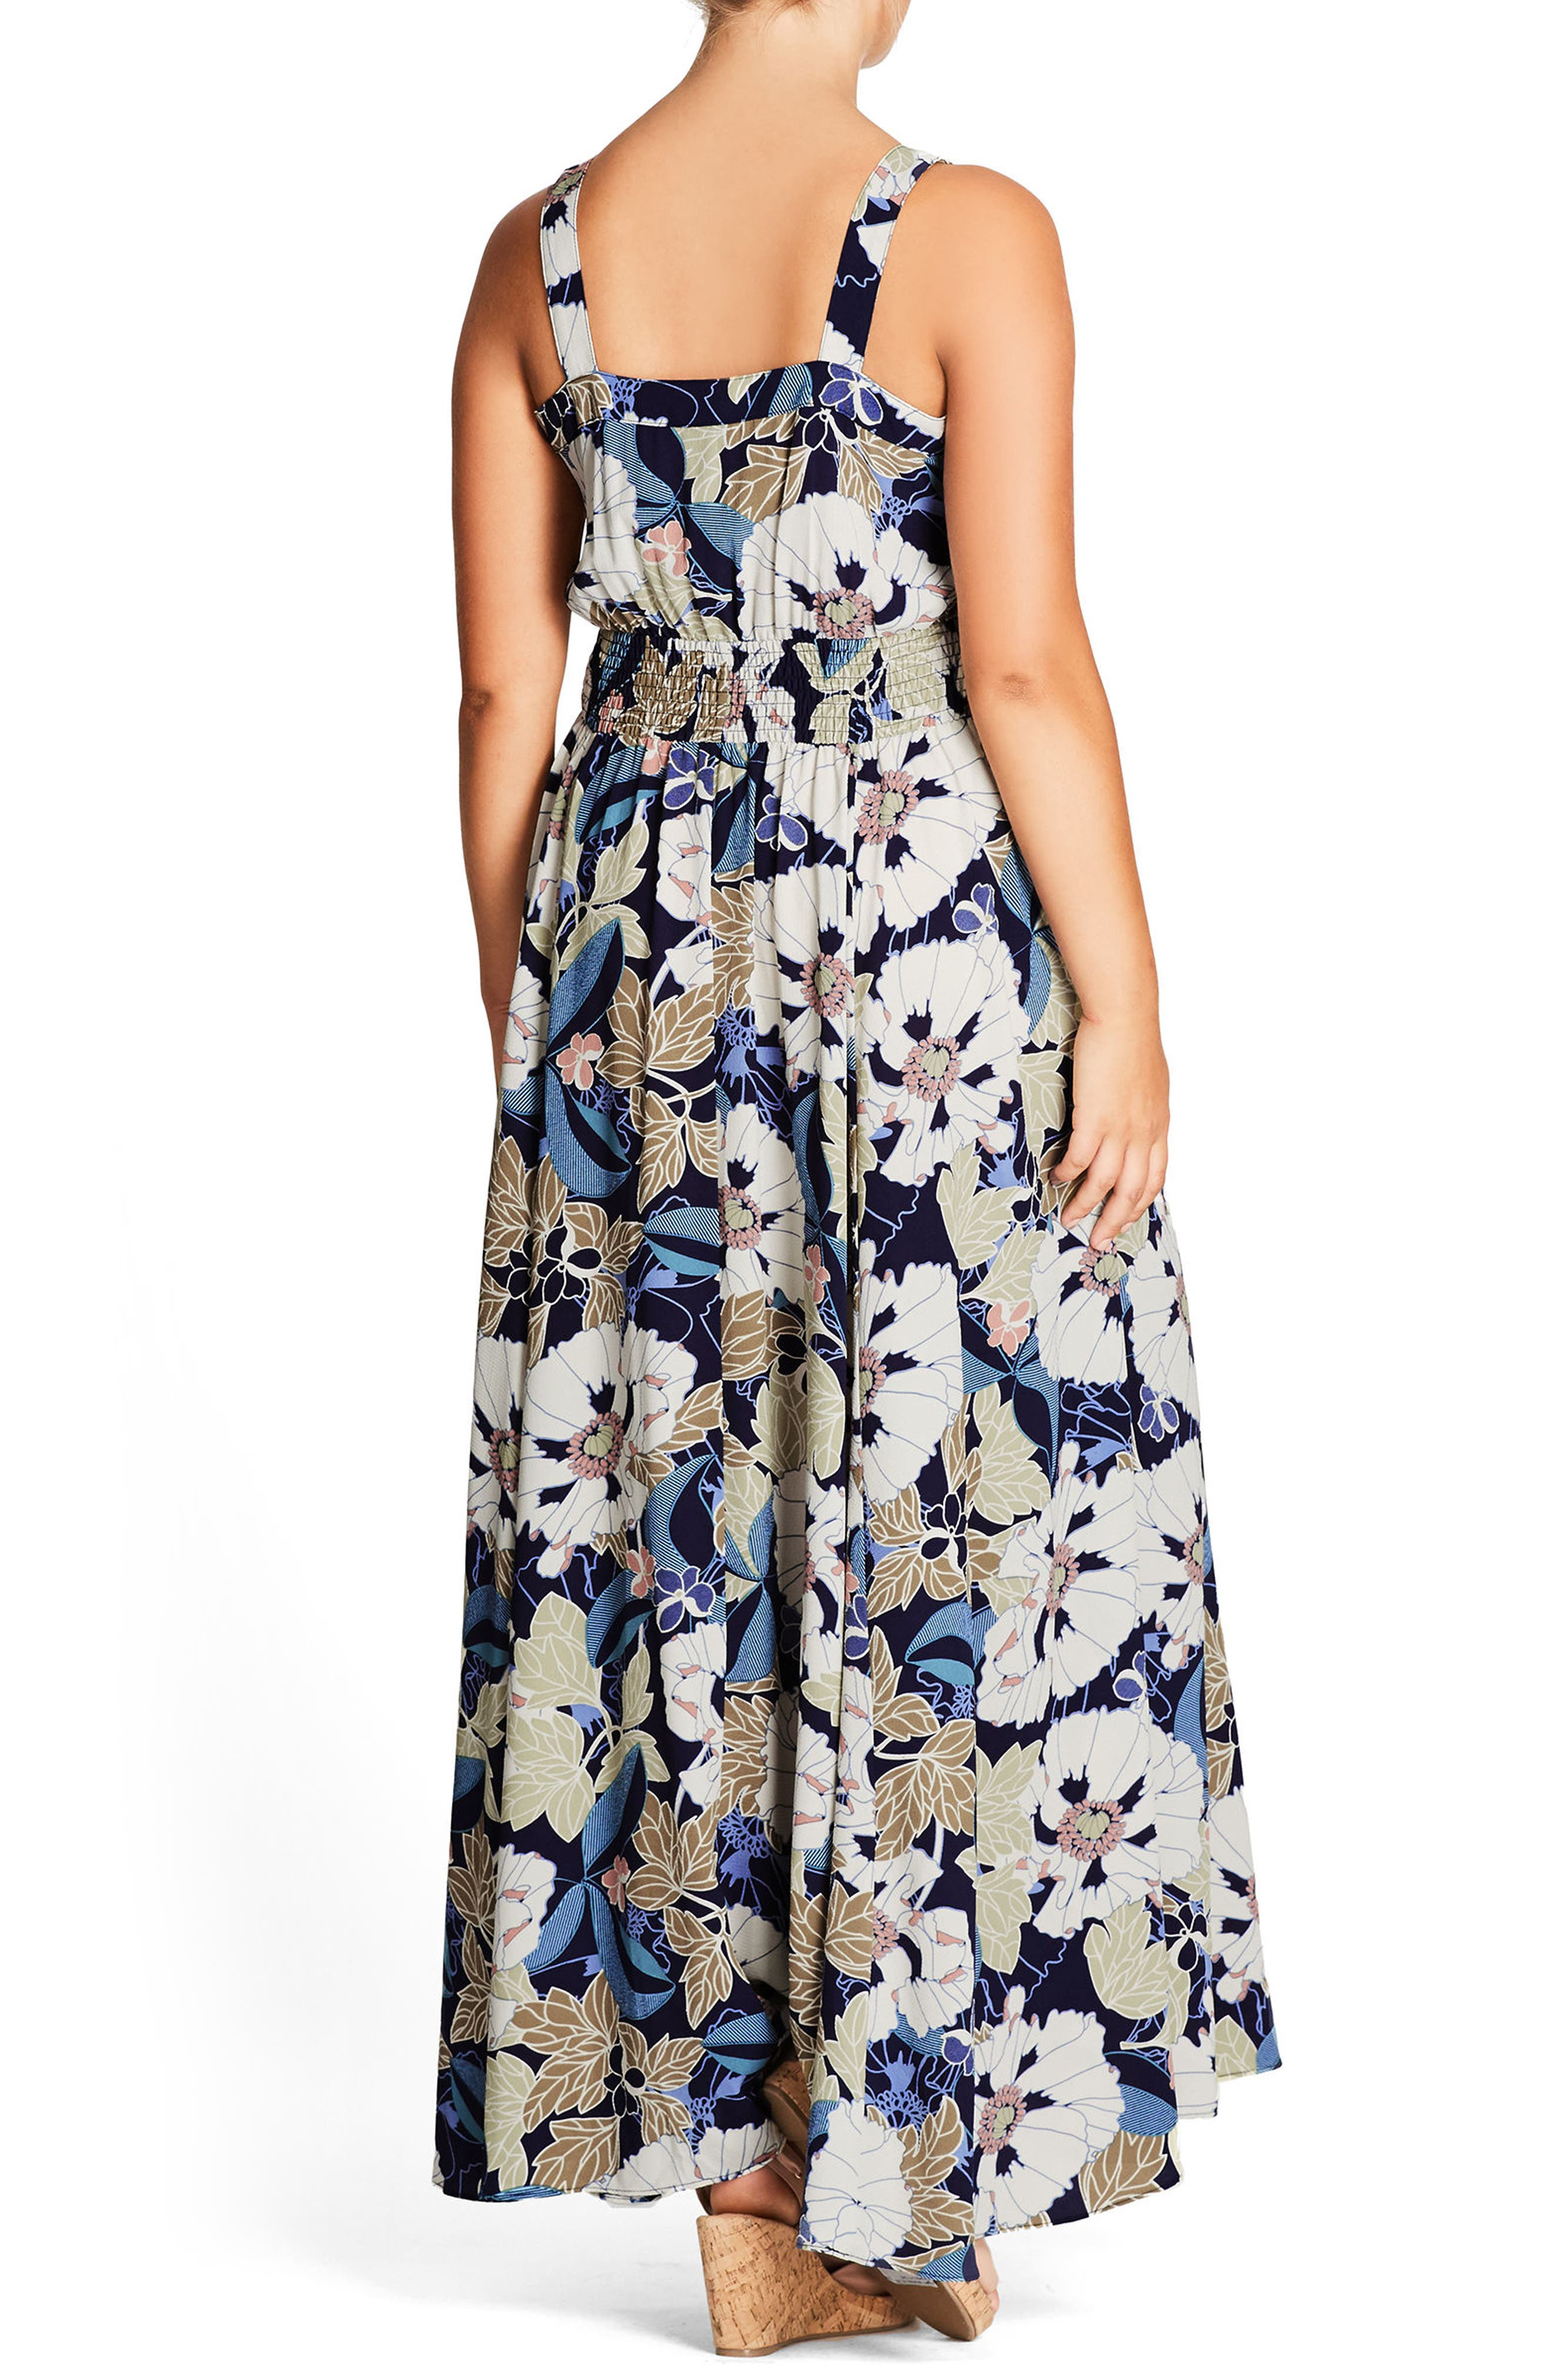 I Found You Maxi Dress,                             Alternate thumbnail 2, color,                             651